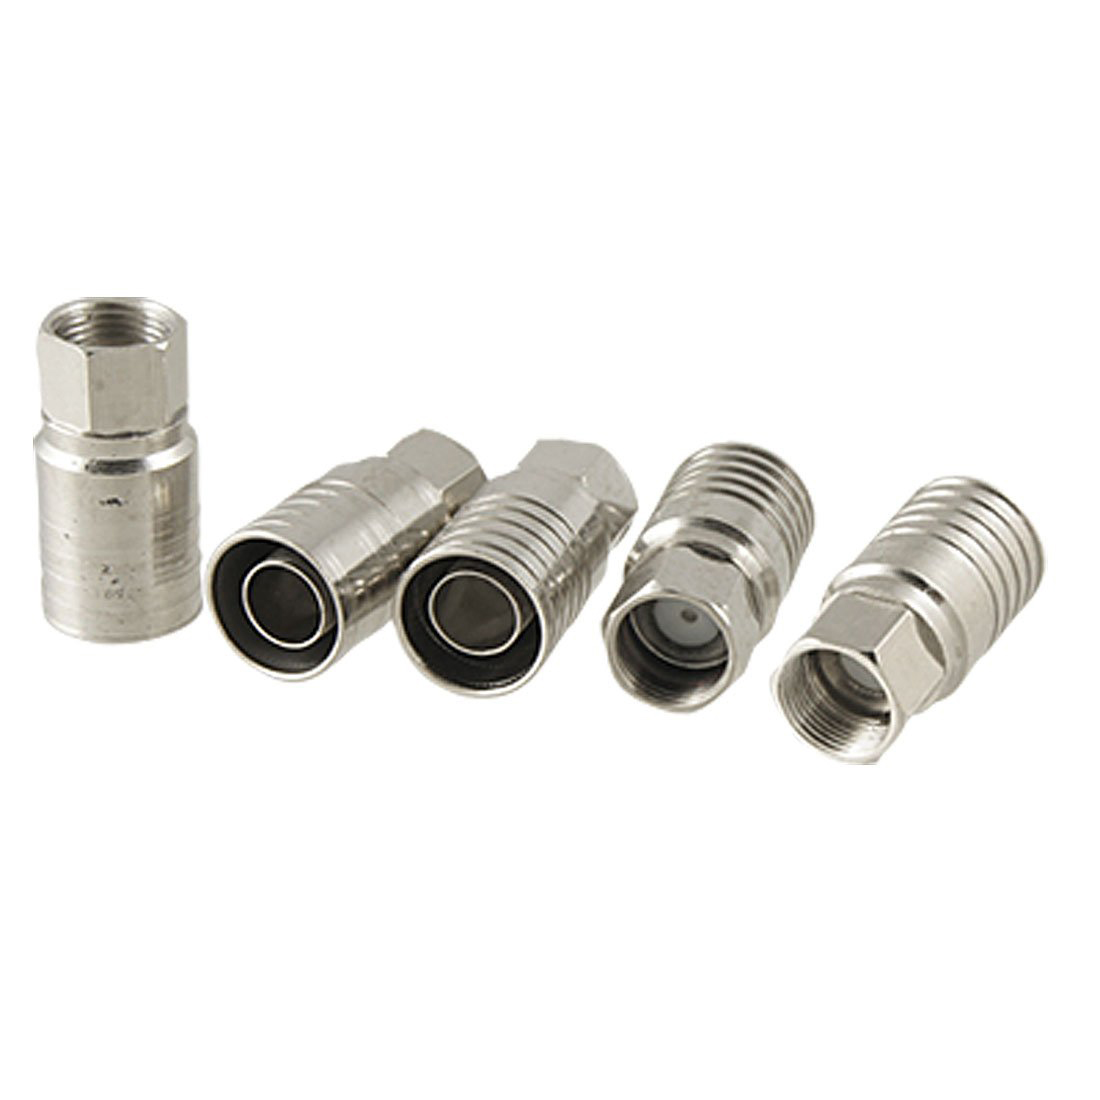 Pcs silver tone crimp type f connector for rg cable